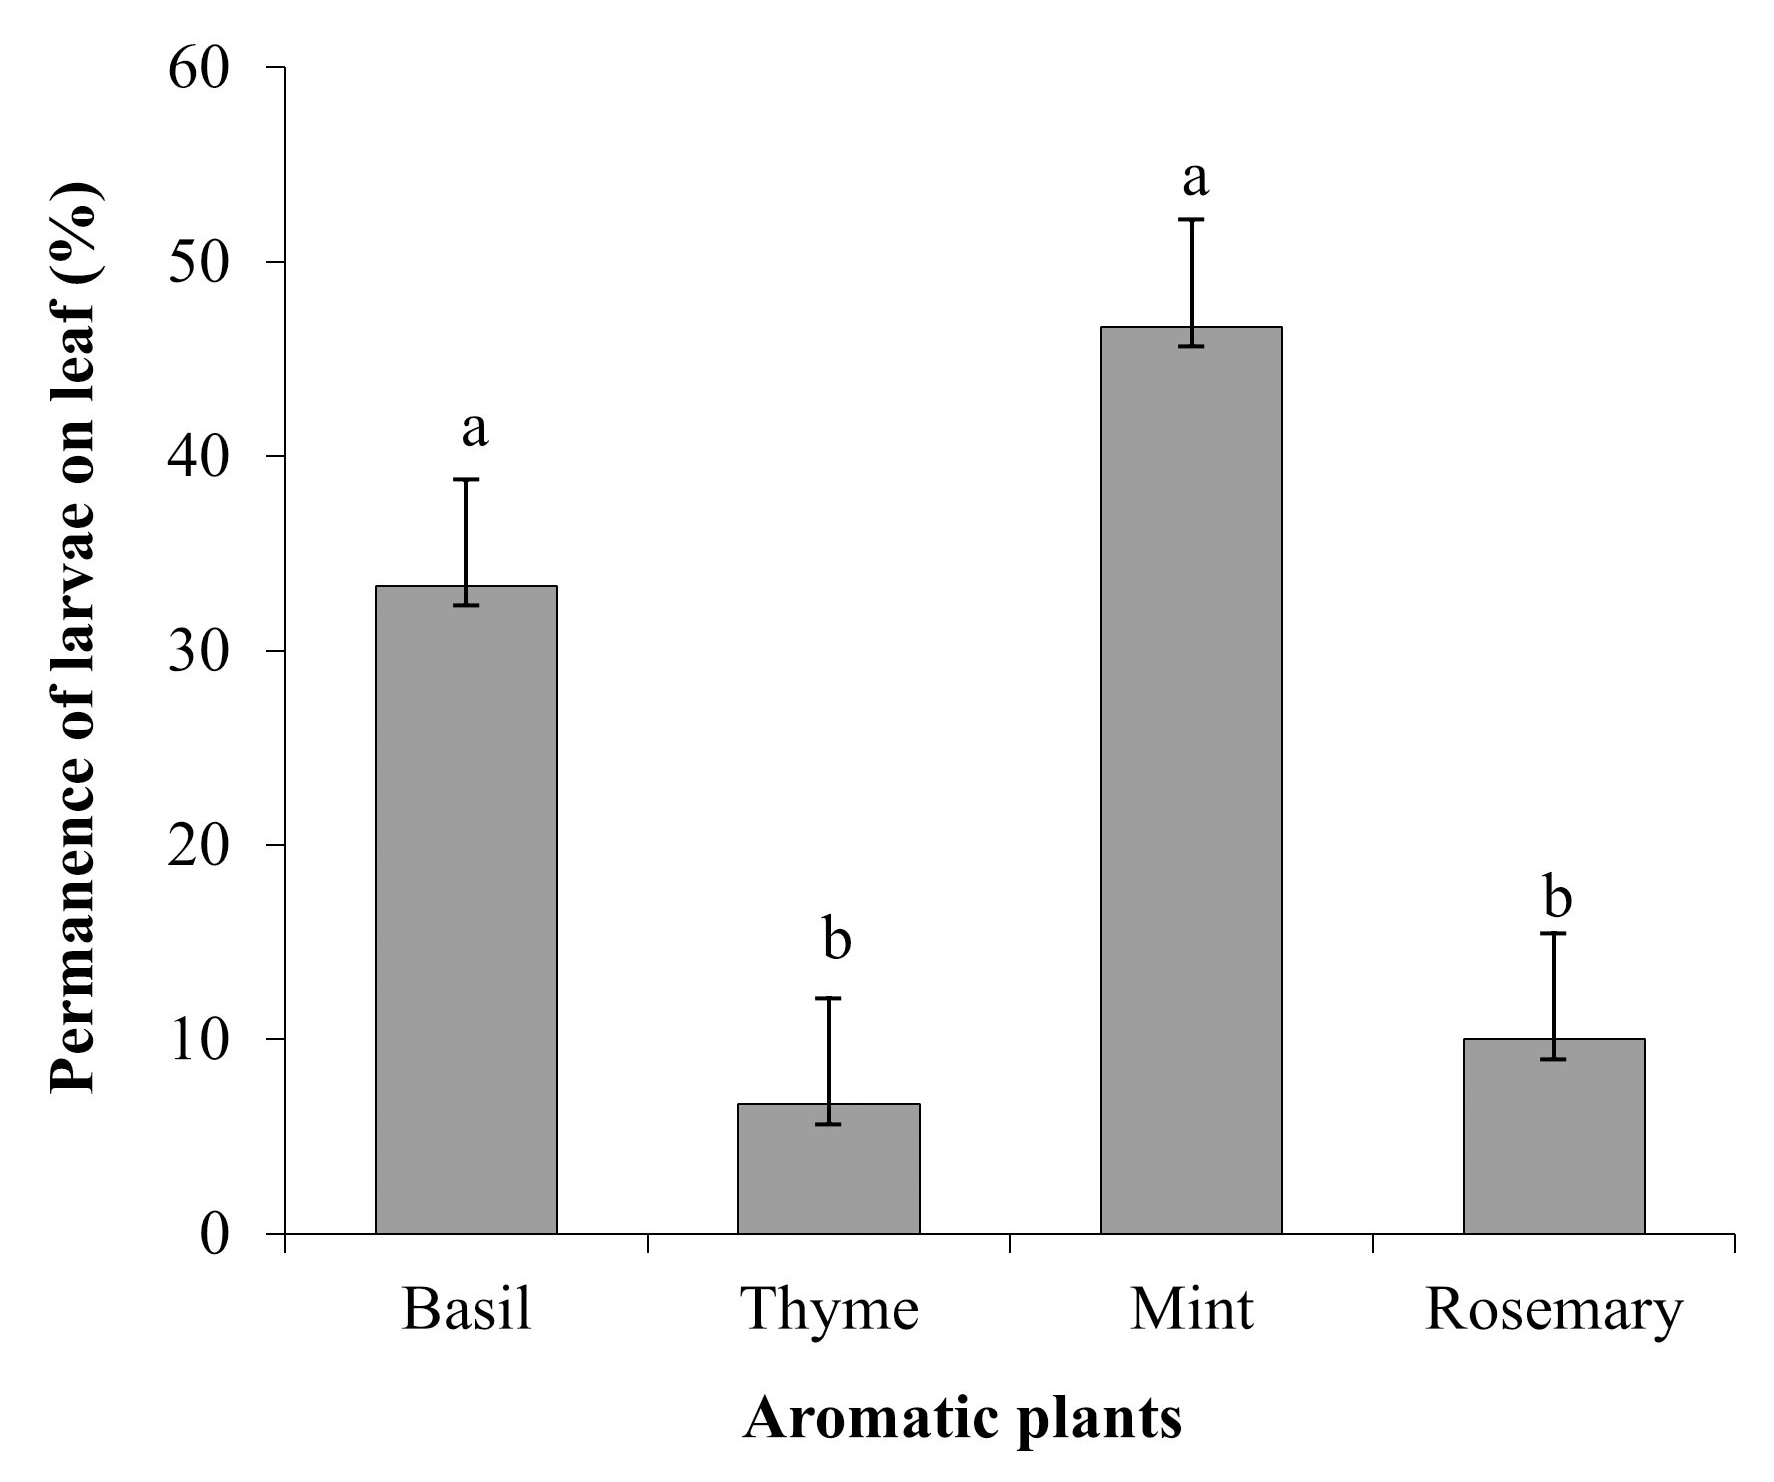 hight resolution of figure 4 permanence test of copitarsia uncilata 3rd instar versus four aromatic plants basil thyme mint and rosemary bars represent standard error